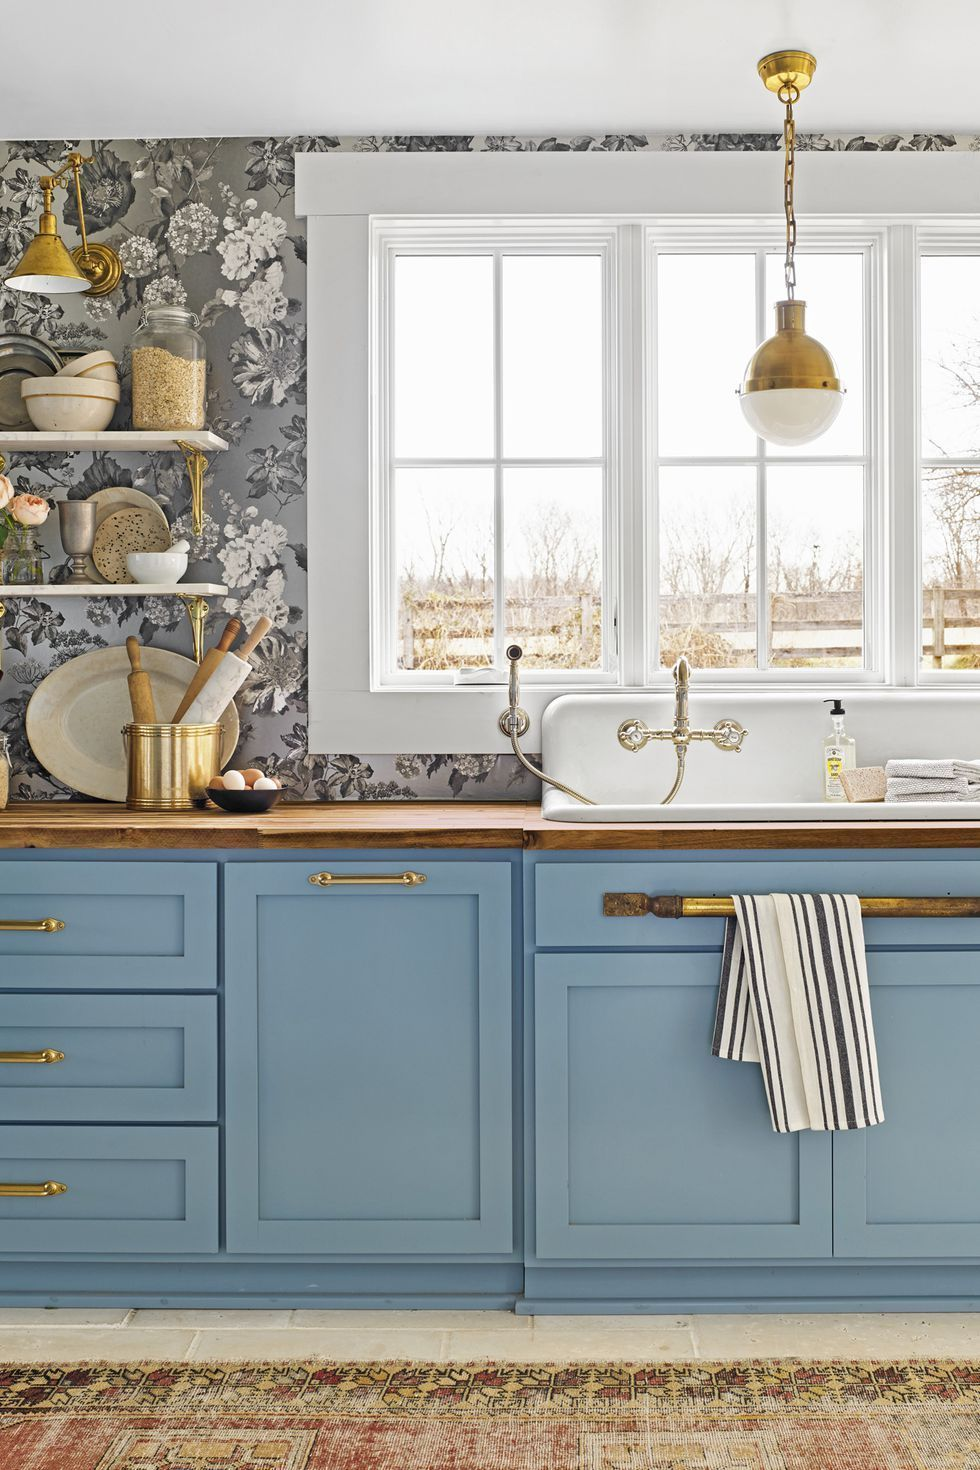 32 Kitchen Trends for 2020 That We Predict Will Be Everywhere